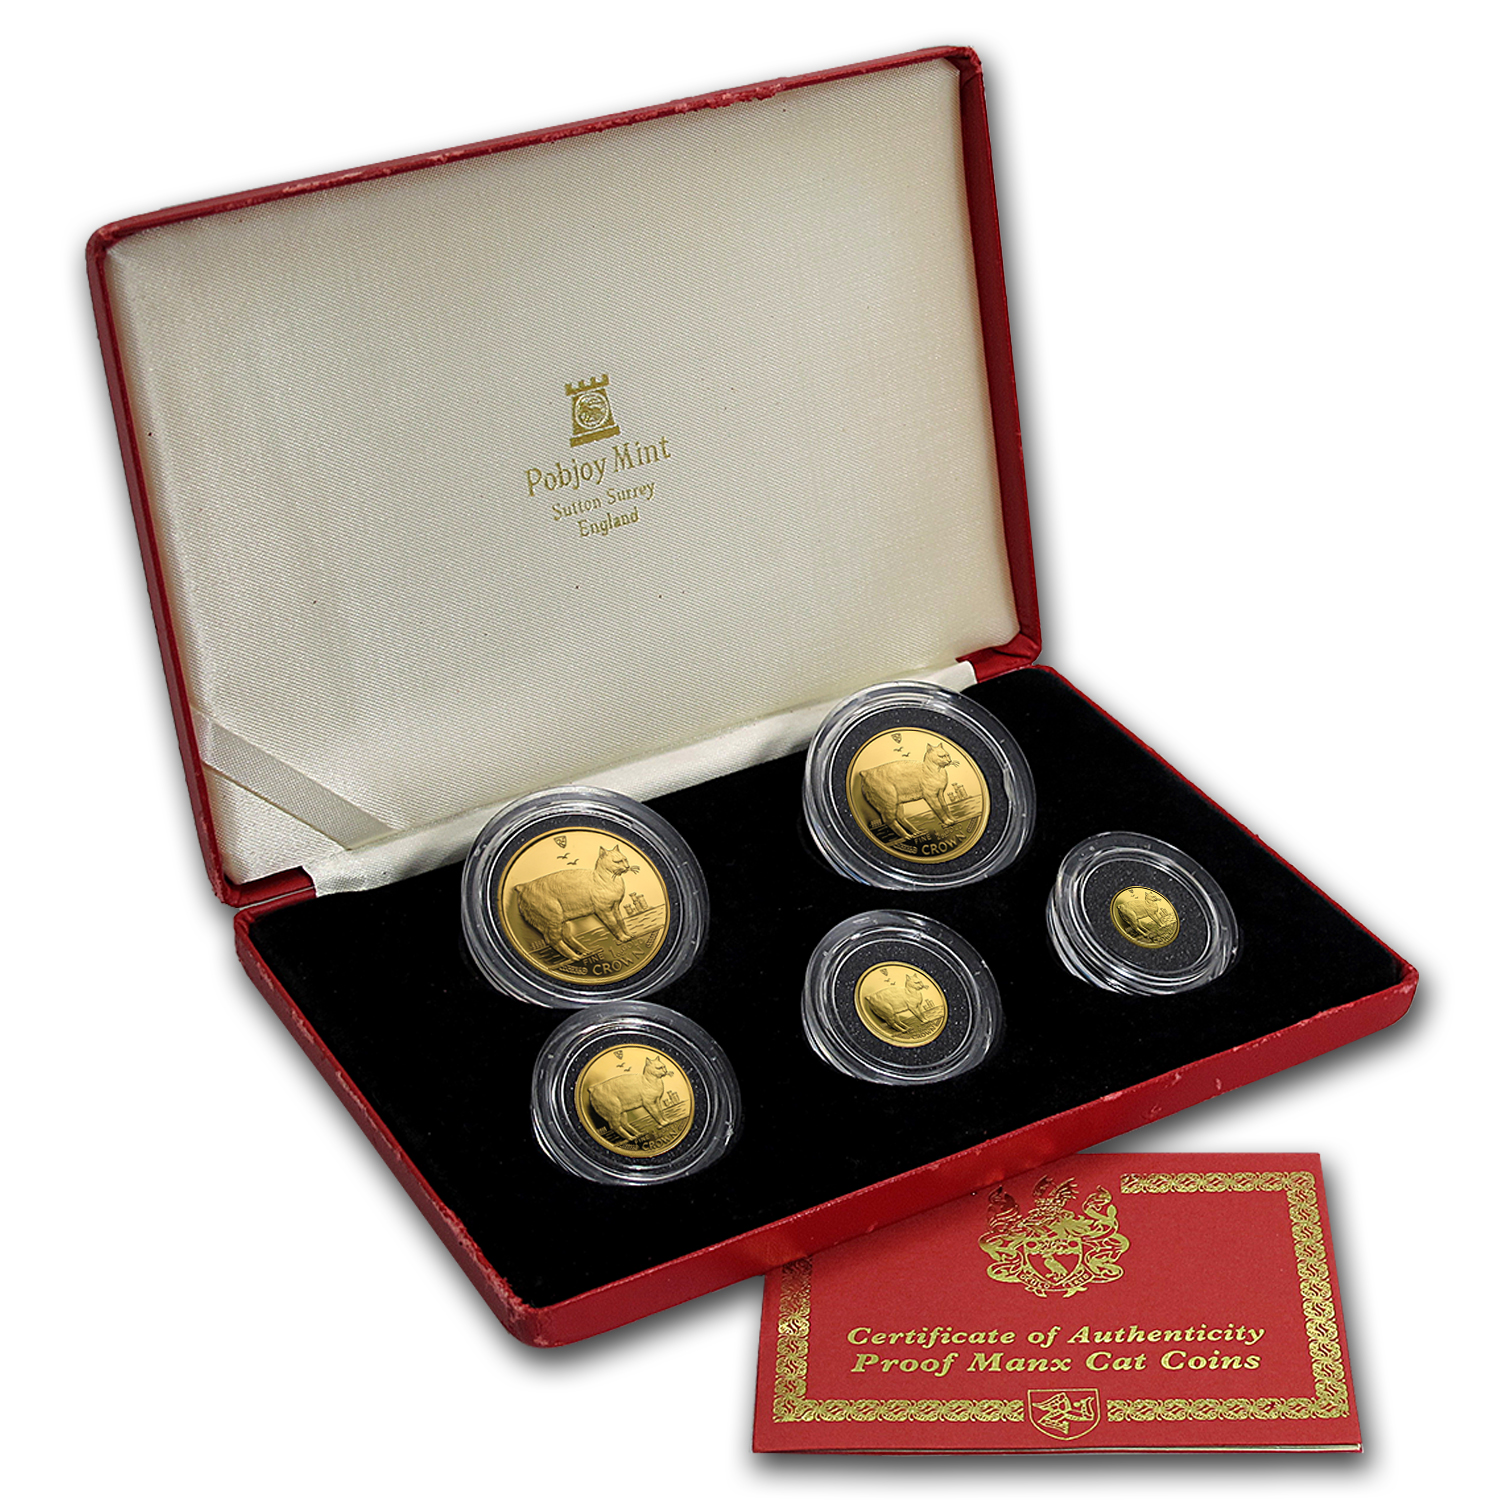 1988 Isle of Man 5-Coin Gold Manx Cat Proof Set